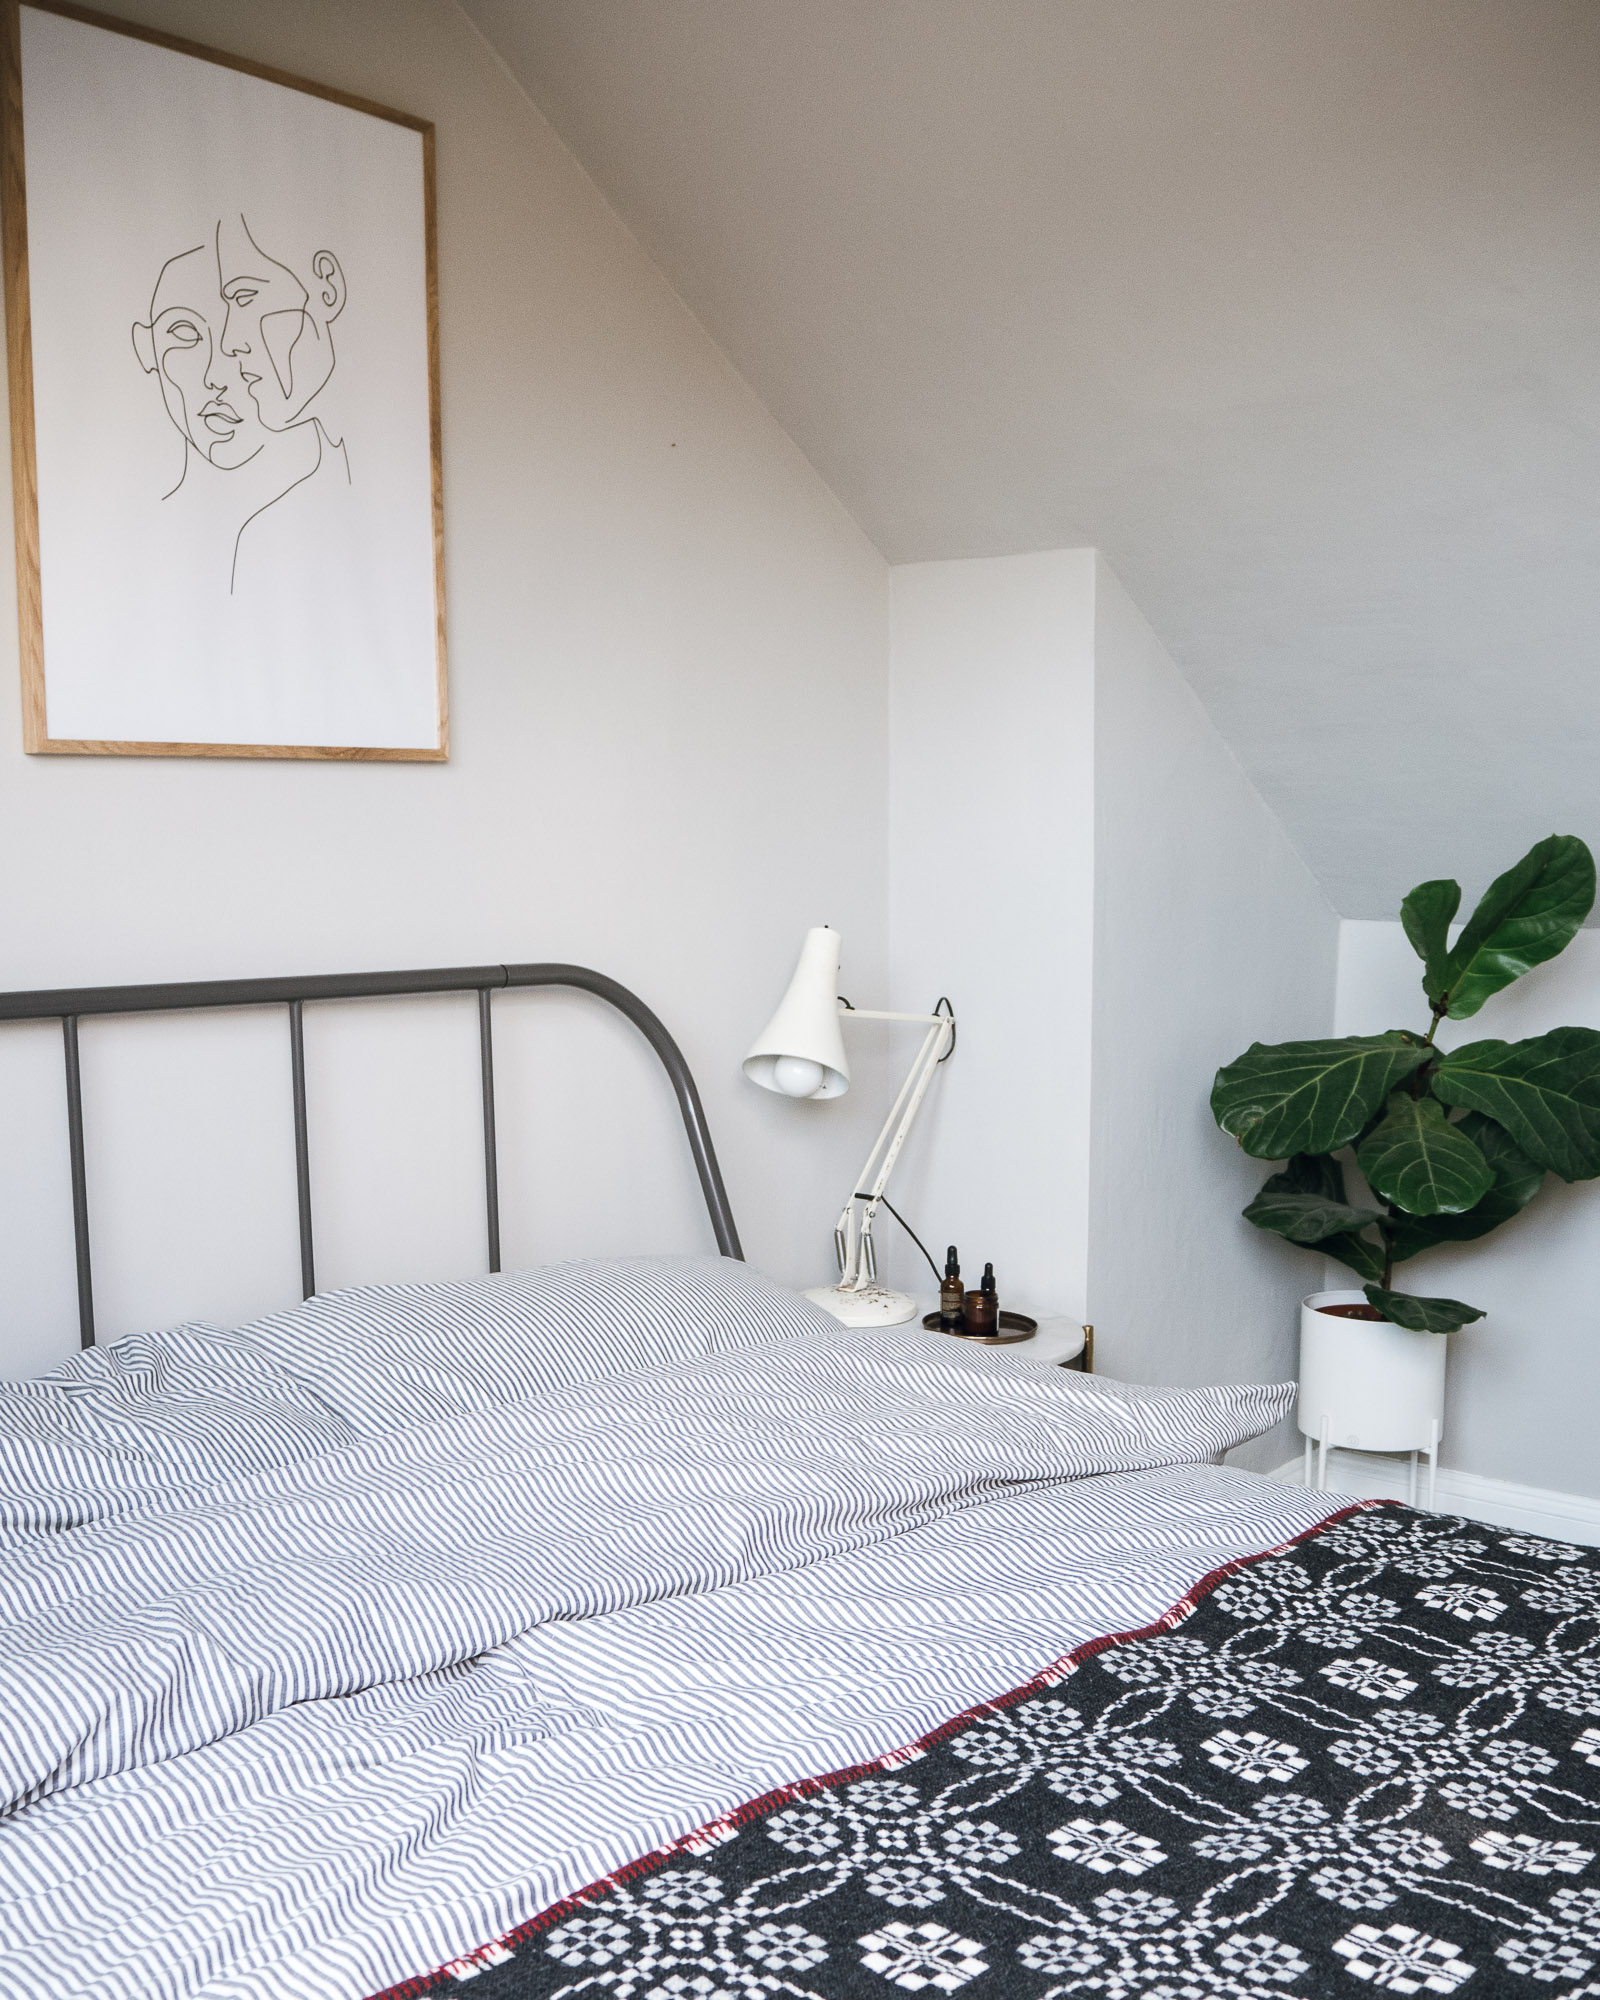 Interiors Decor Creating A Spare Room For Guests With Eve Premium Mattress